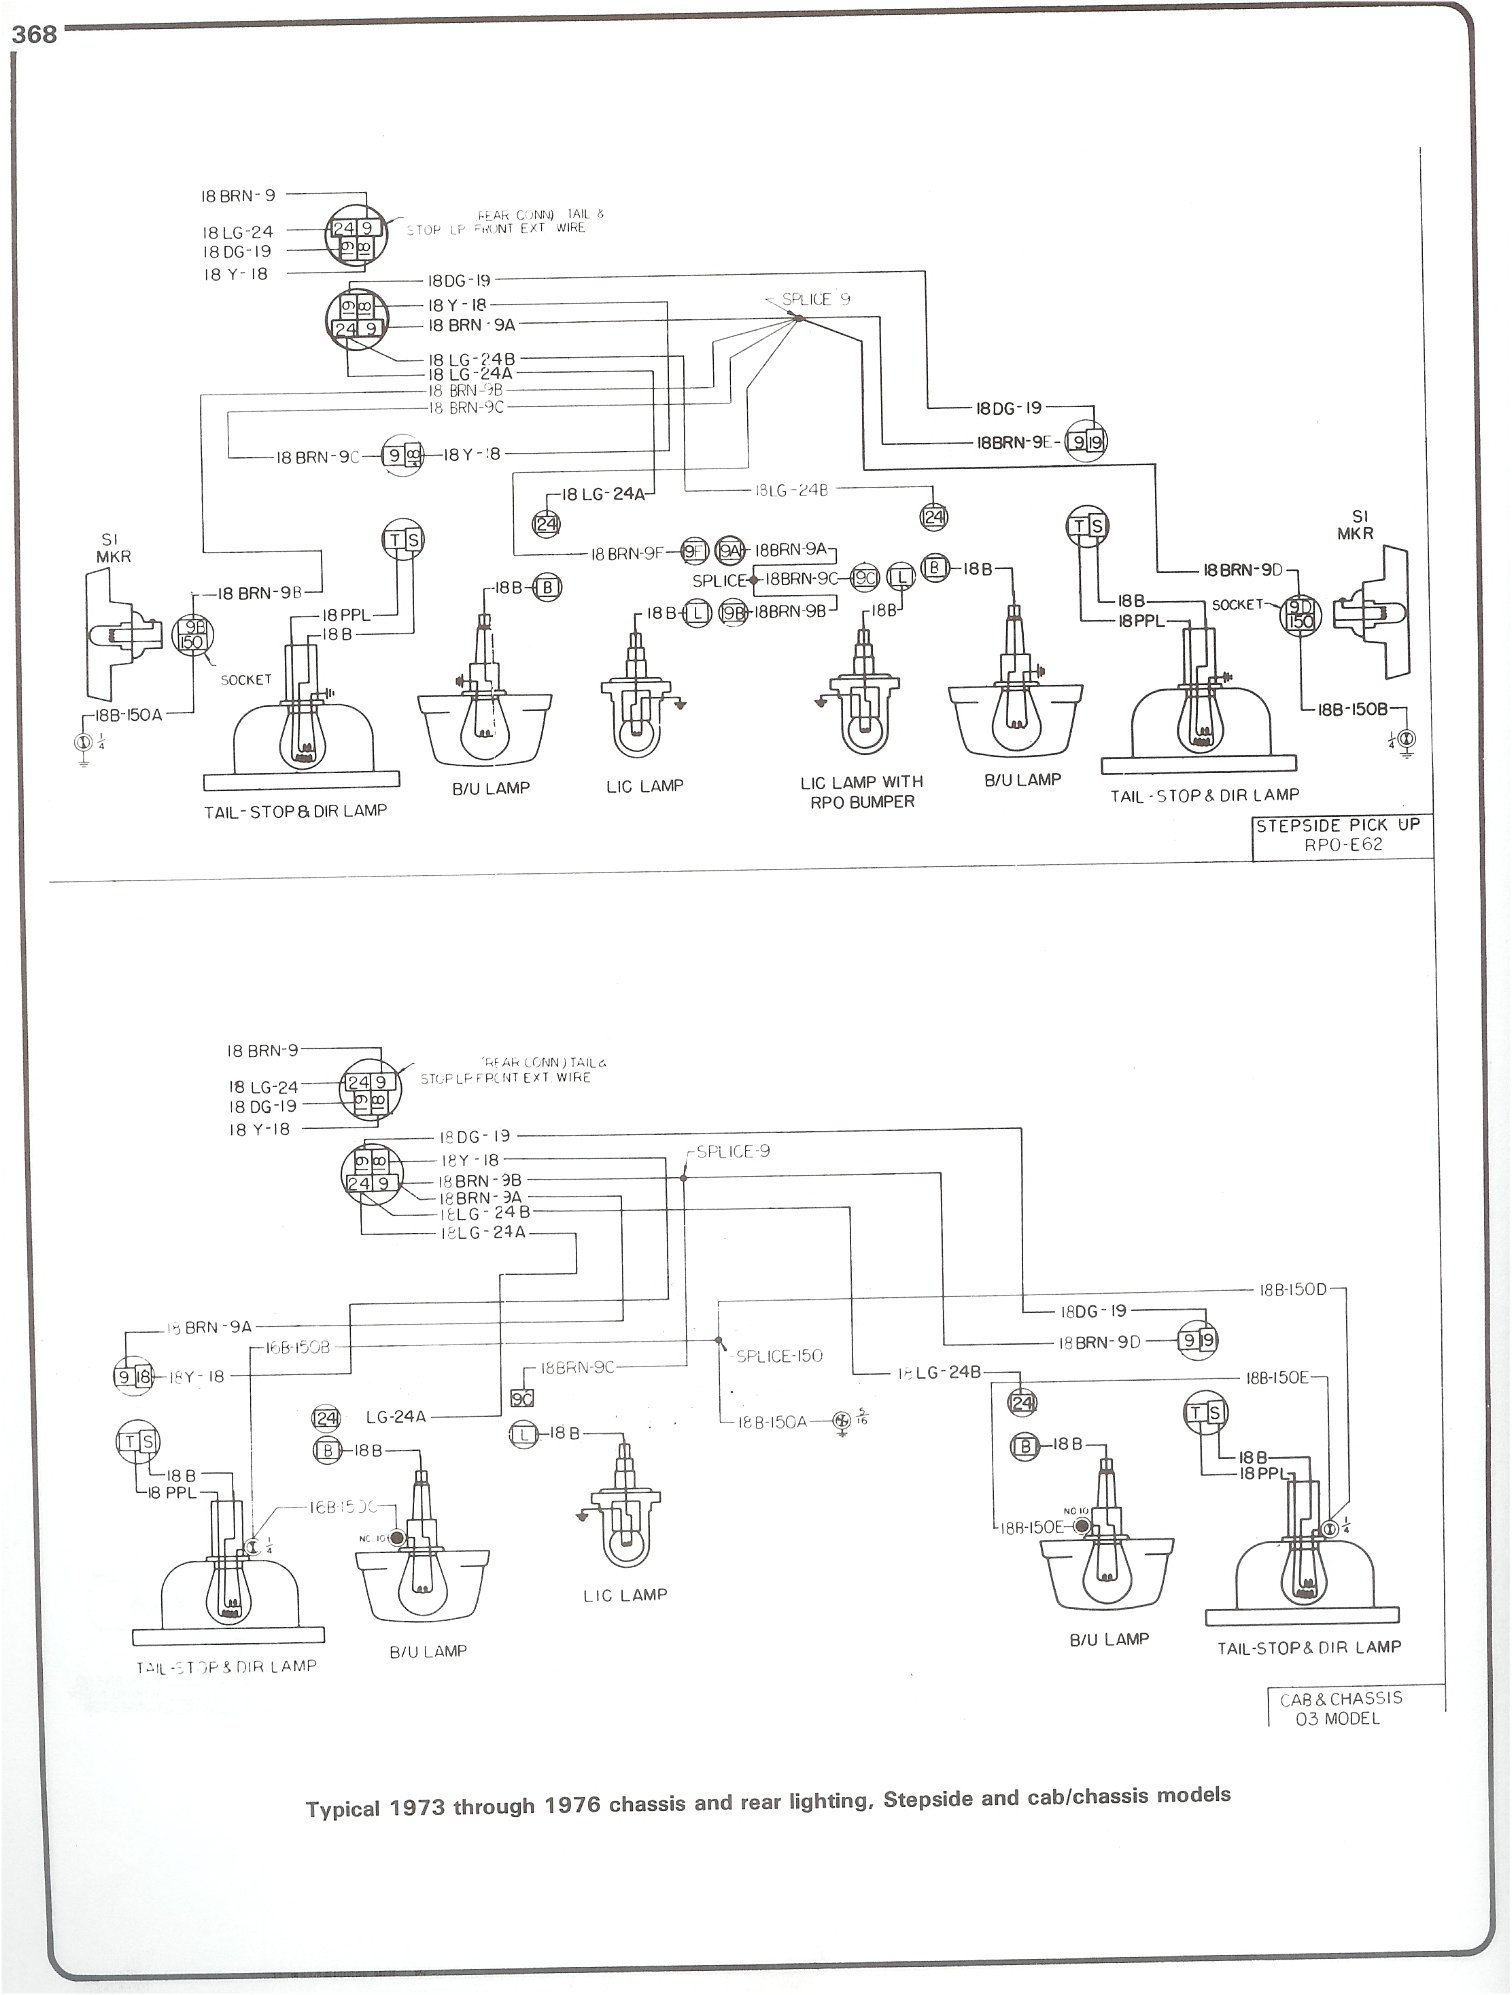 wiring diagrams for trucks usb to audio jack diagram 87 chevy headlight free engine image